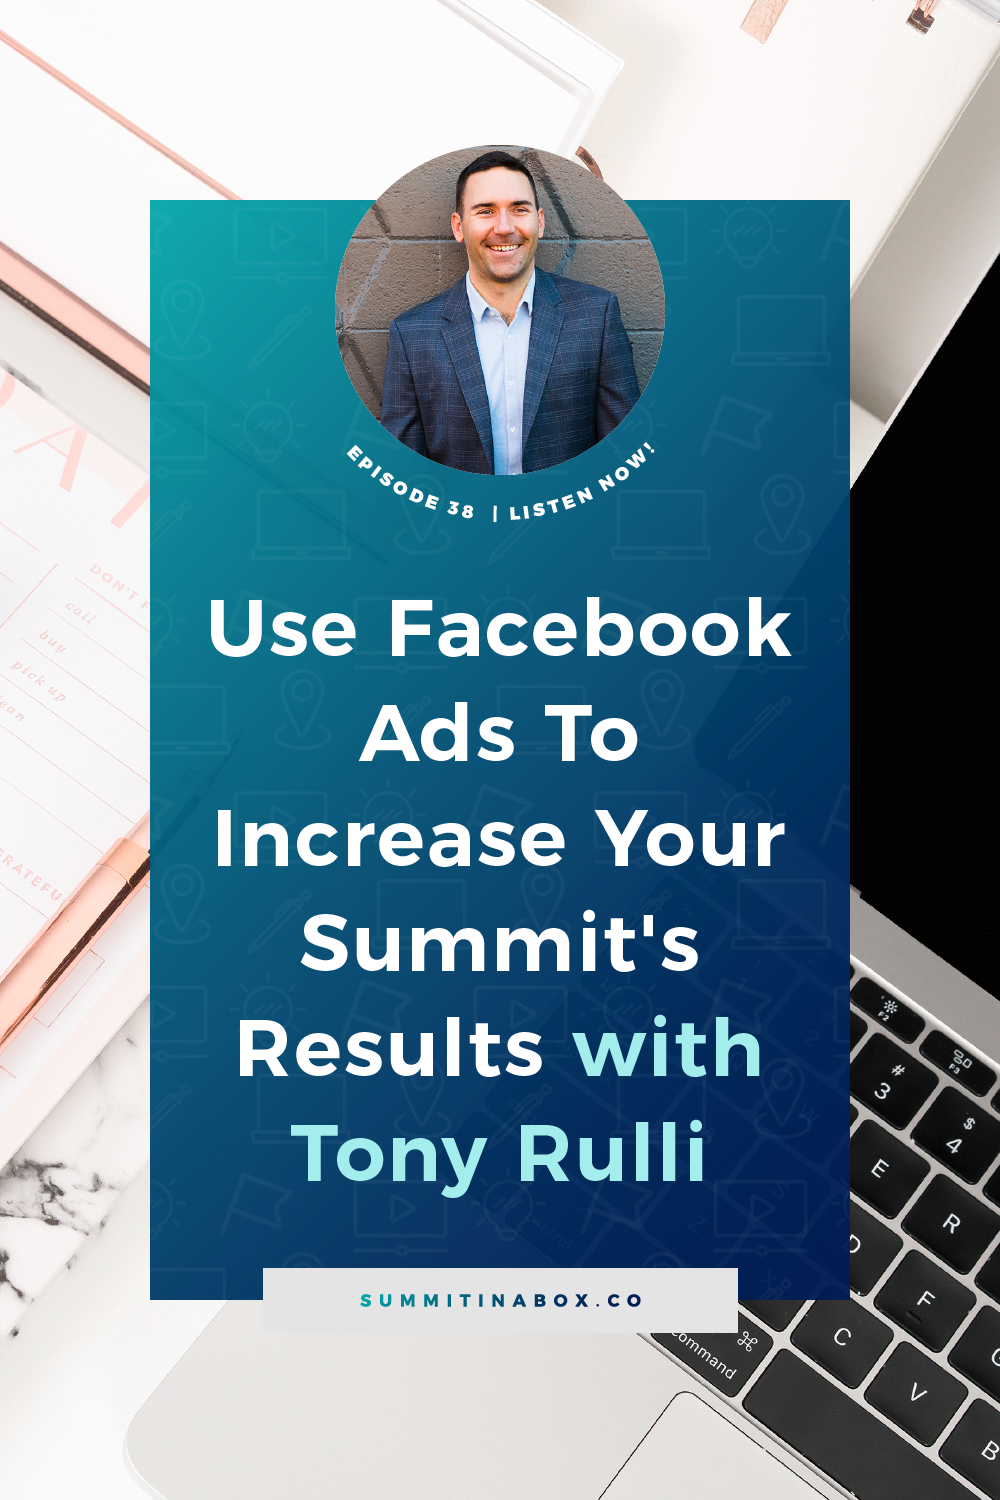 Looking to get more registrations and sales for your event? Let's cover how to run virtual summit Facebook ads to drive registrations and sales.